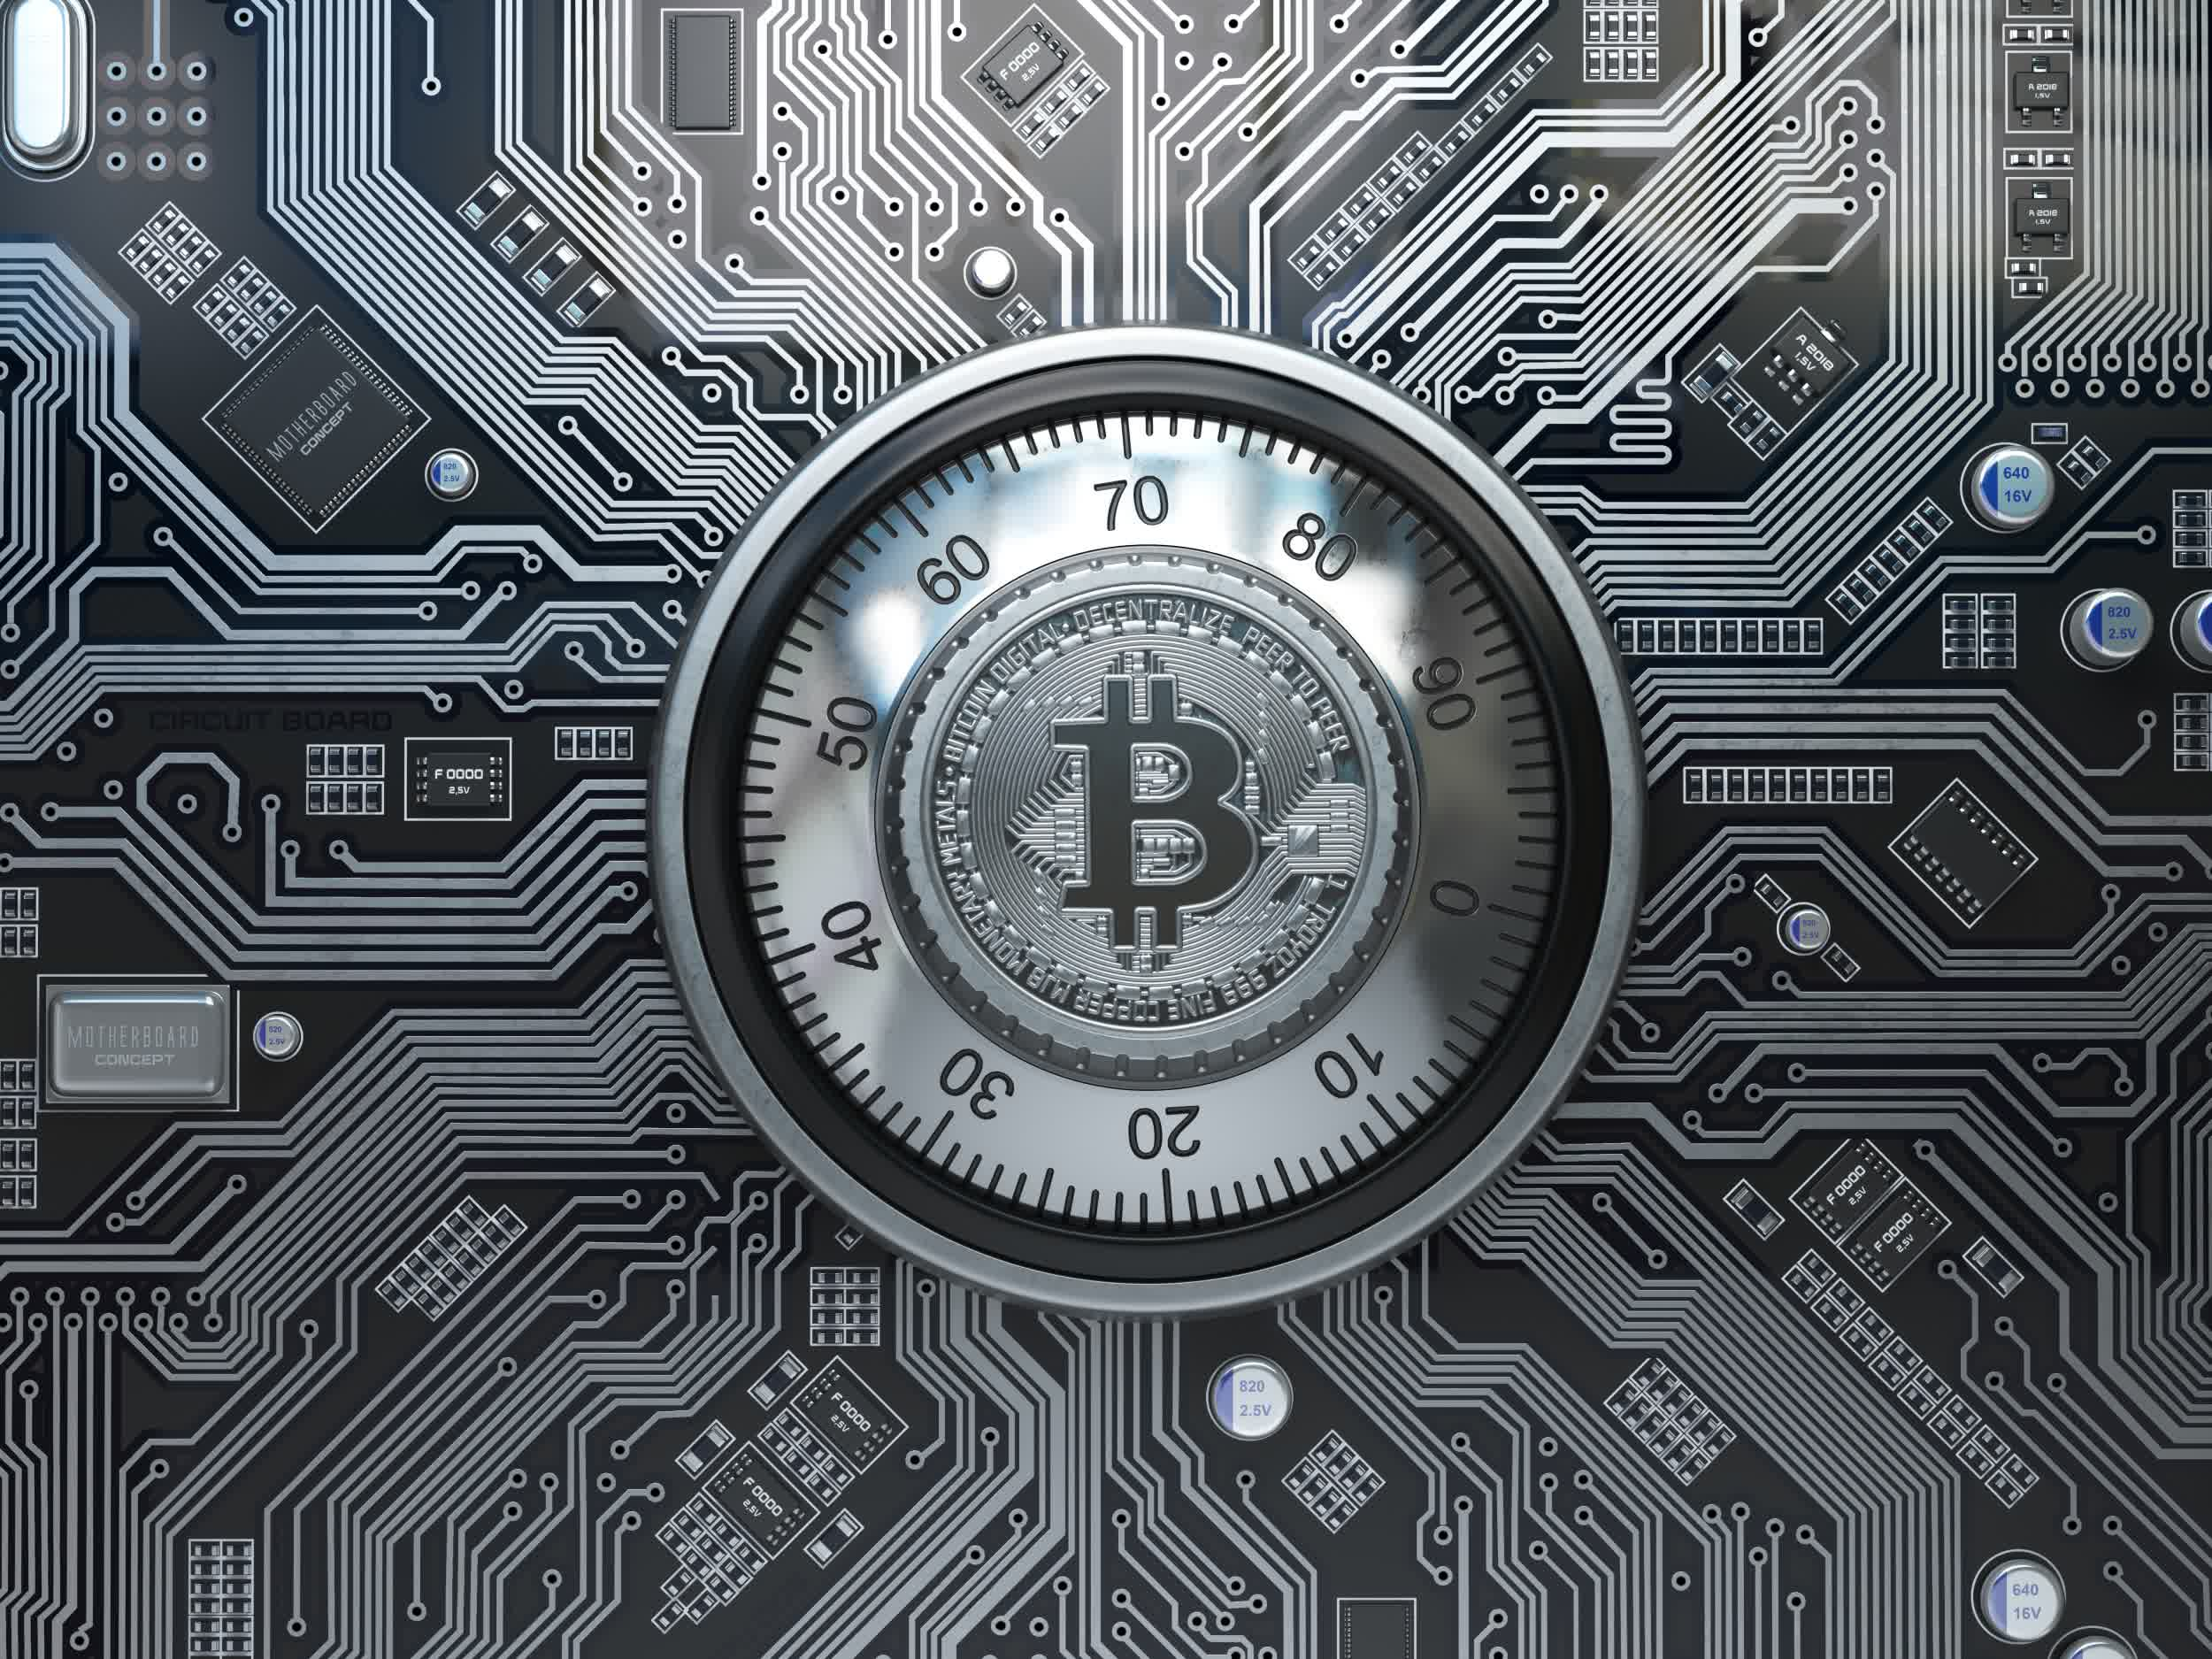 PayPal is buying cryptocurrency startup Curv to harden security